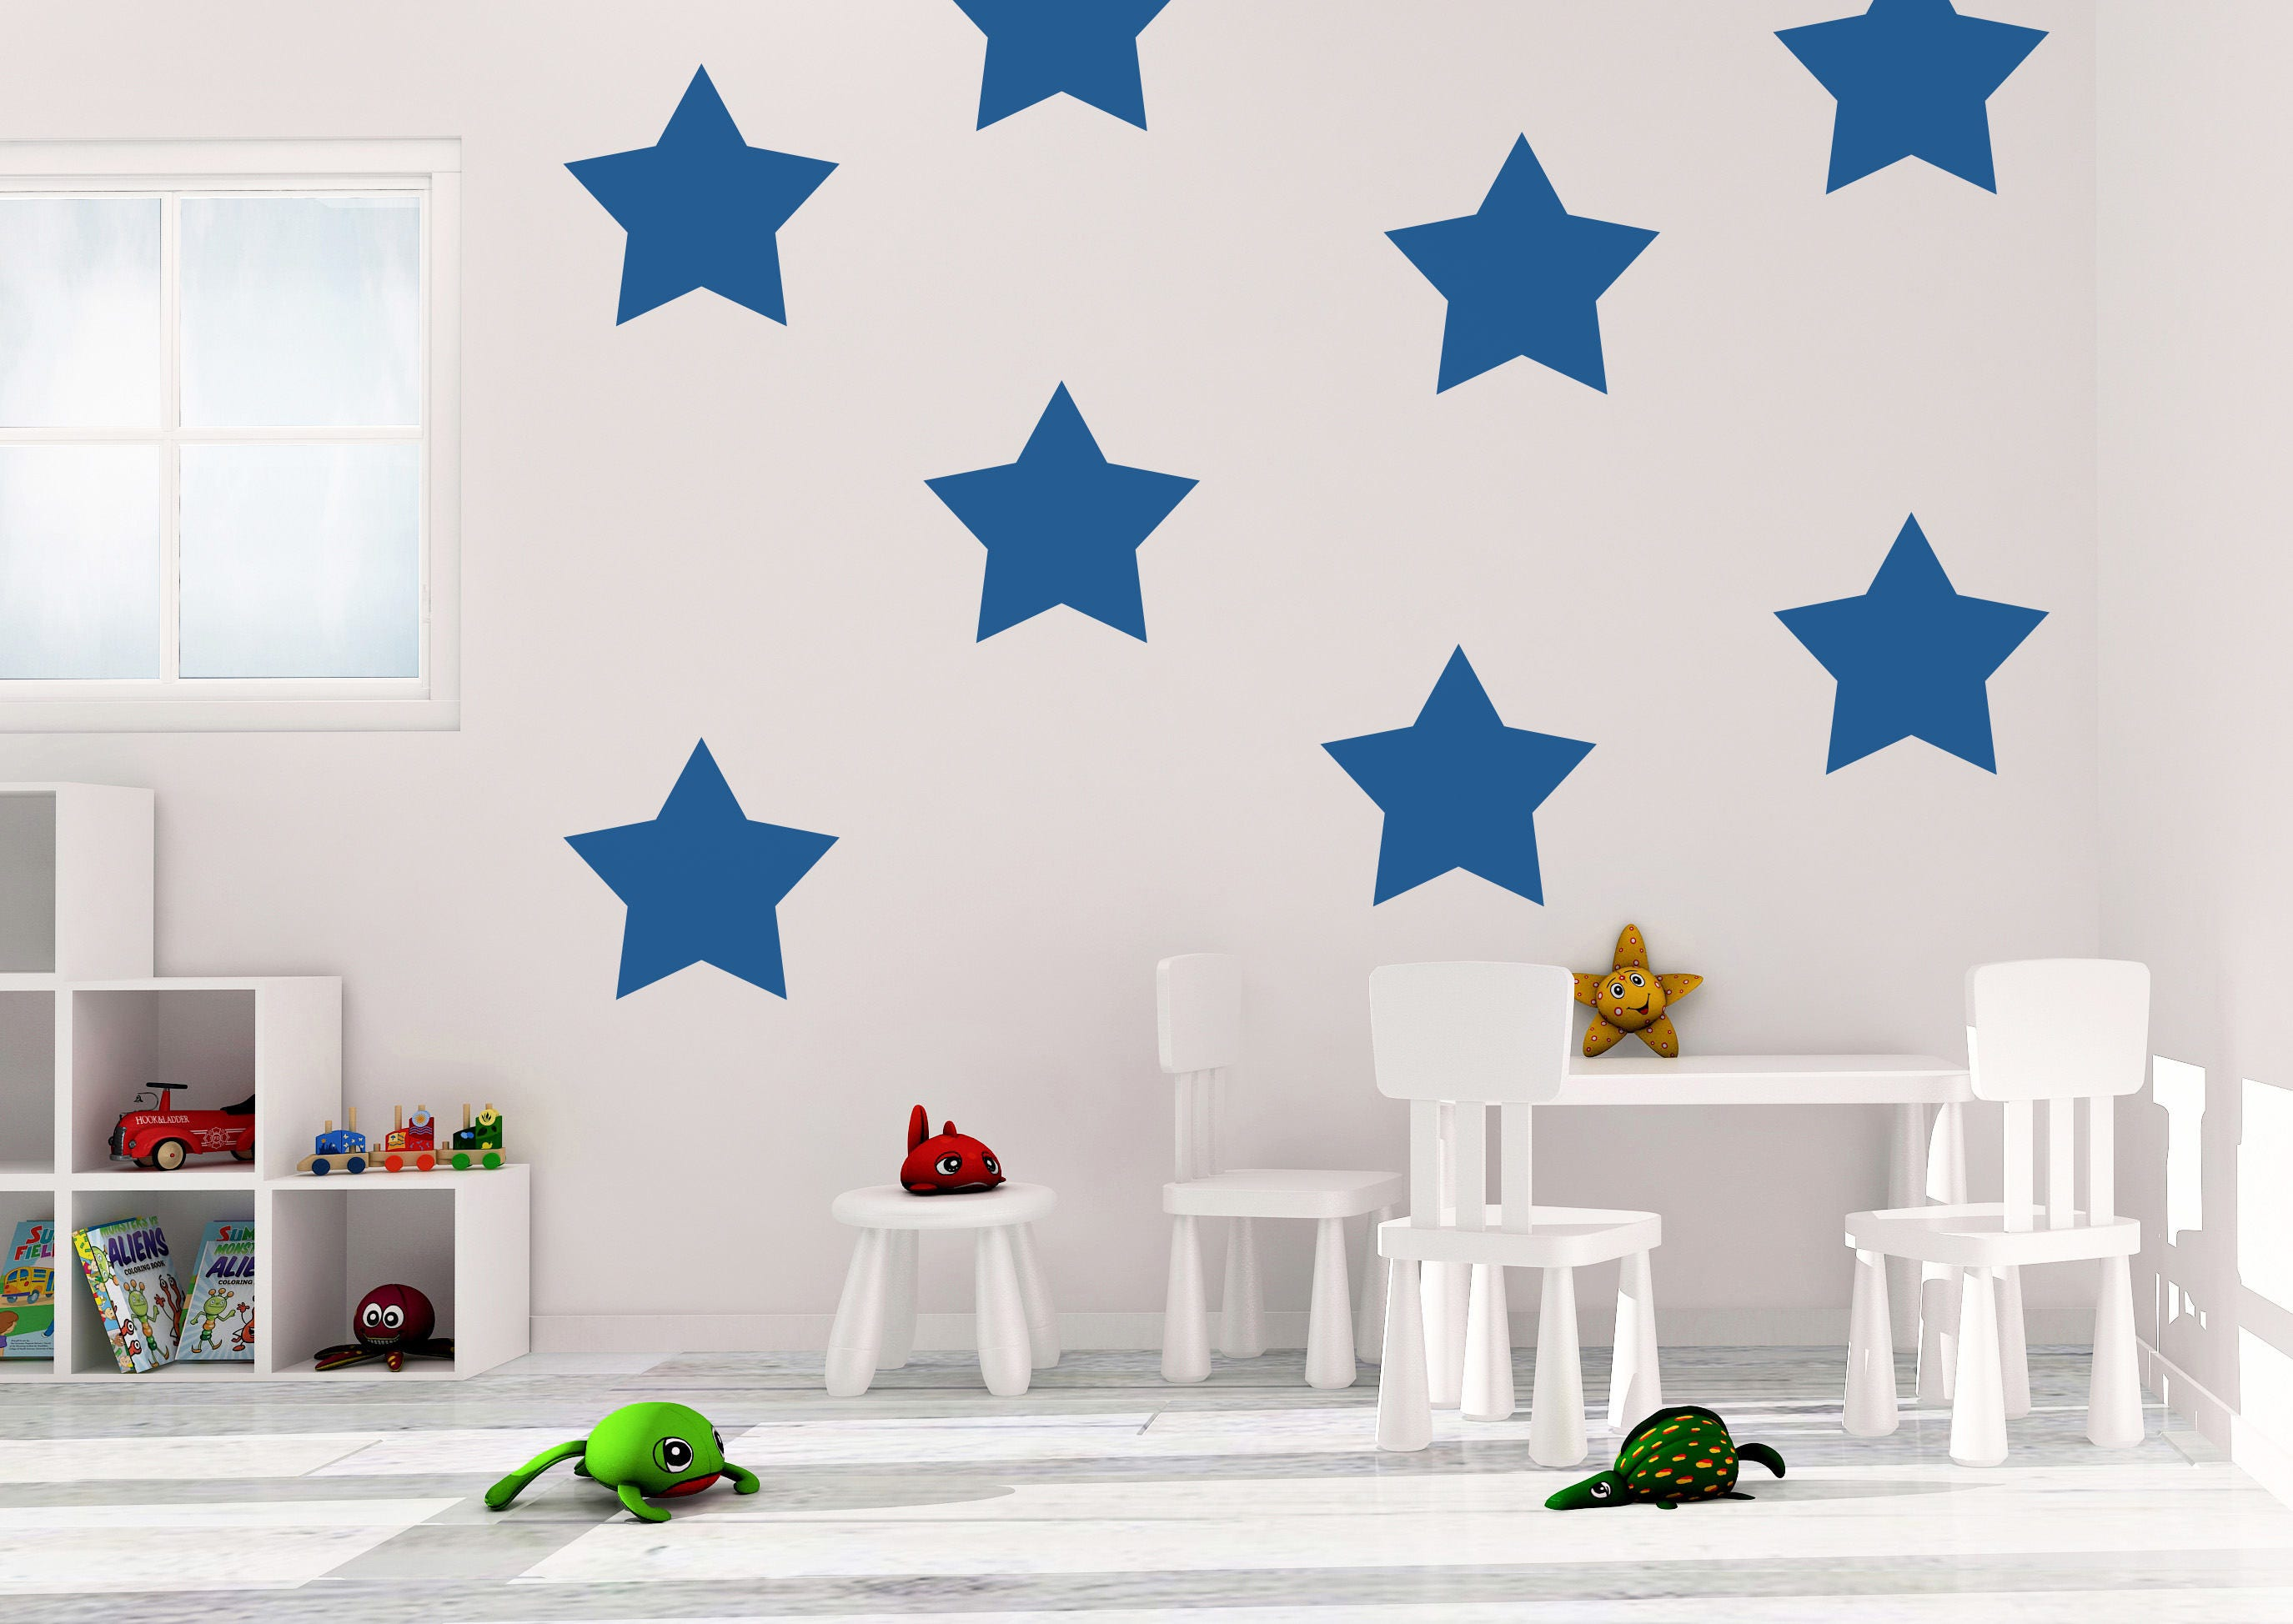 Star Wall Decals - Star Decal - Vinyl Wall Decal - Stars - Wall Decal - Decal - Stars Wall Decor - Stars Home Decor & Star Wall Decals - Star Decal - Vinyl Wall Decal - Stars - Wall ...